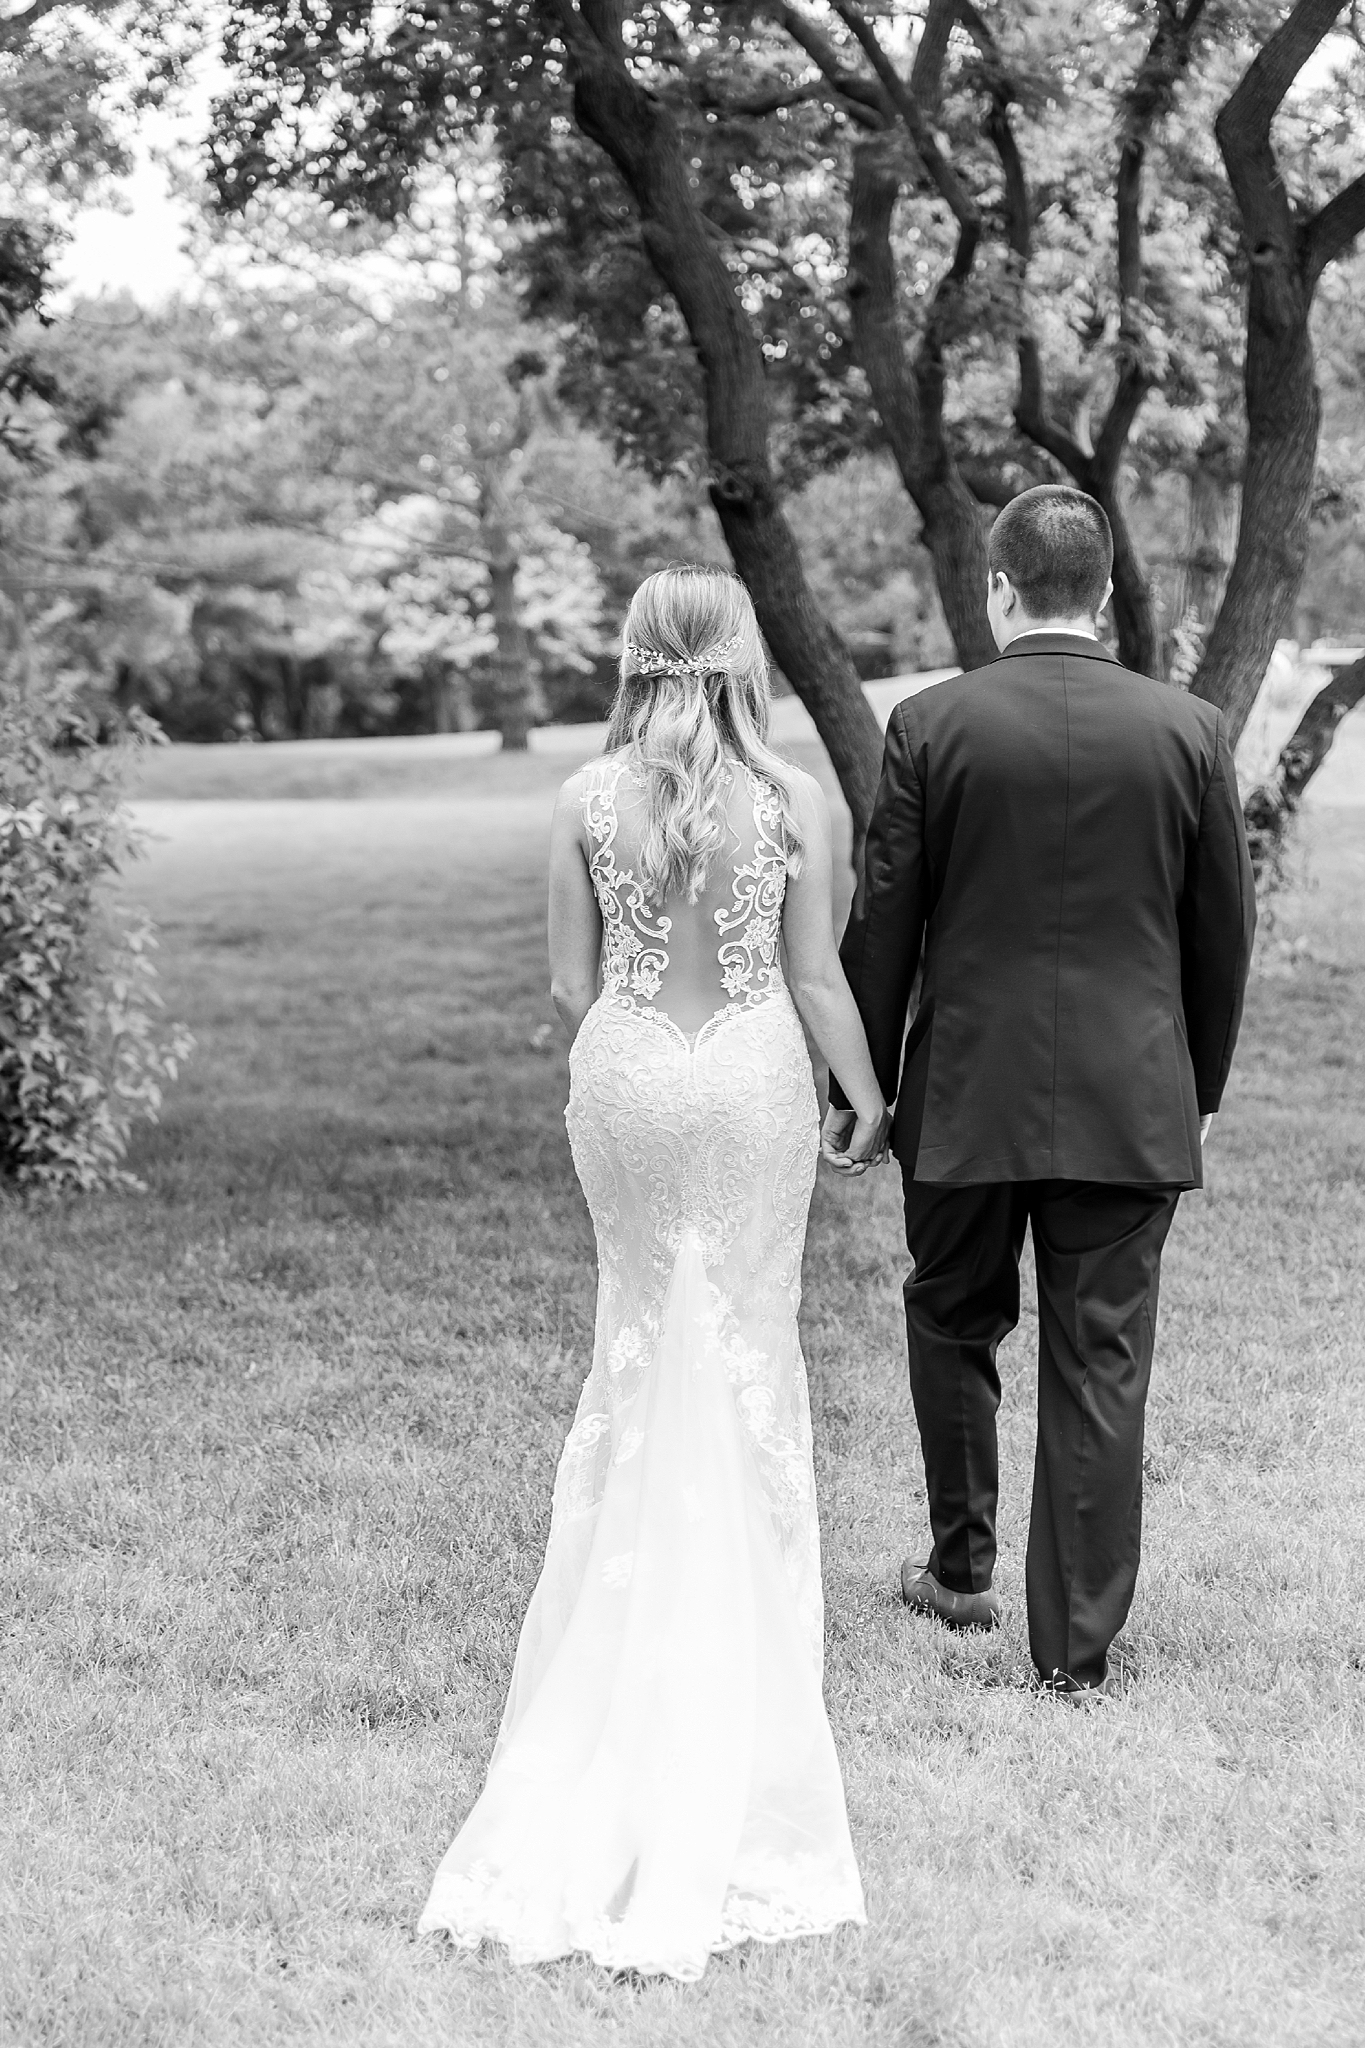 joyful-romantic-modern-laid-back-wedding-photography-in-detroit-ann-arbor-northern-mi-and-chicago-by-courtney-carolyn-photography_0021.jpg